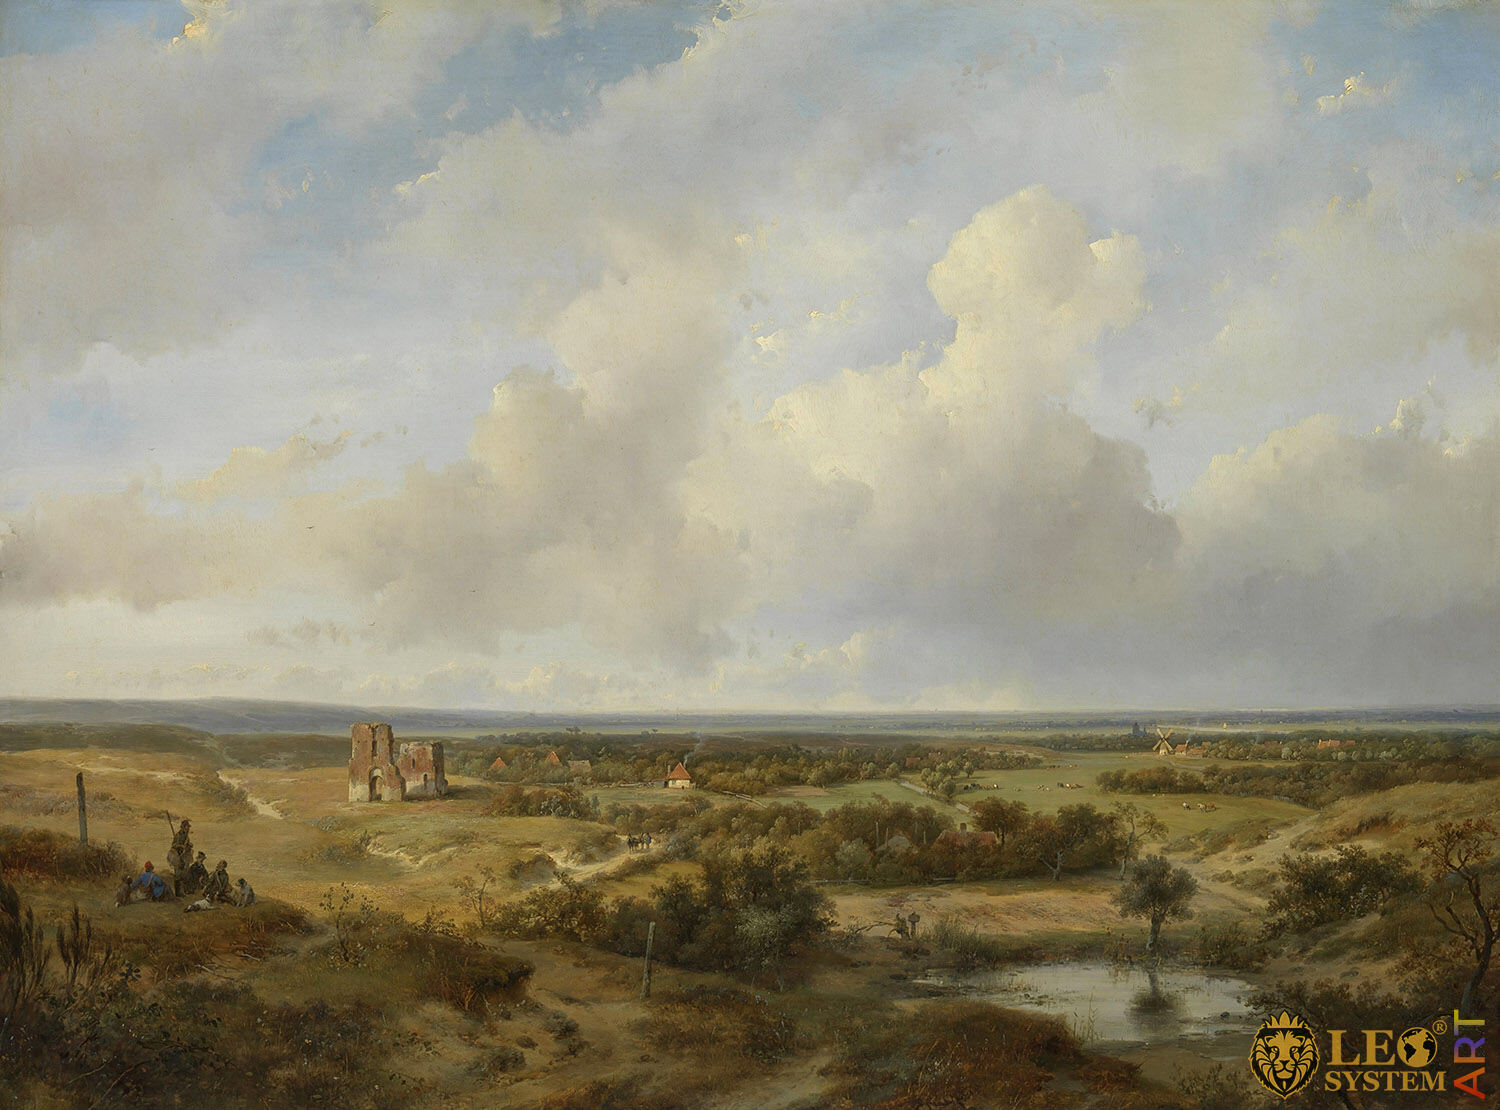 View of Haarlem, Painter: Andreas Schelfhout, 1844, Dutch Painting, Original Painting